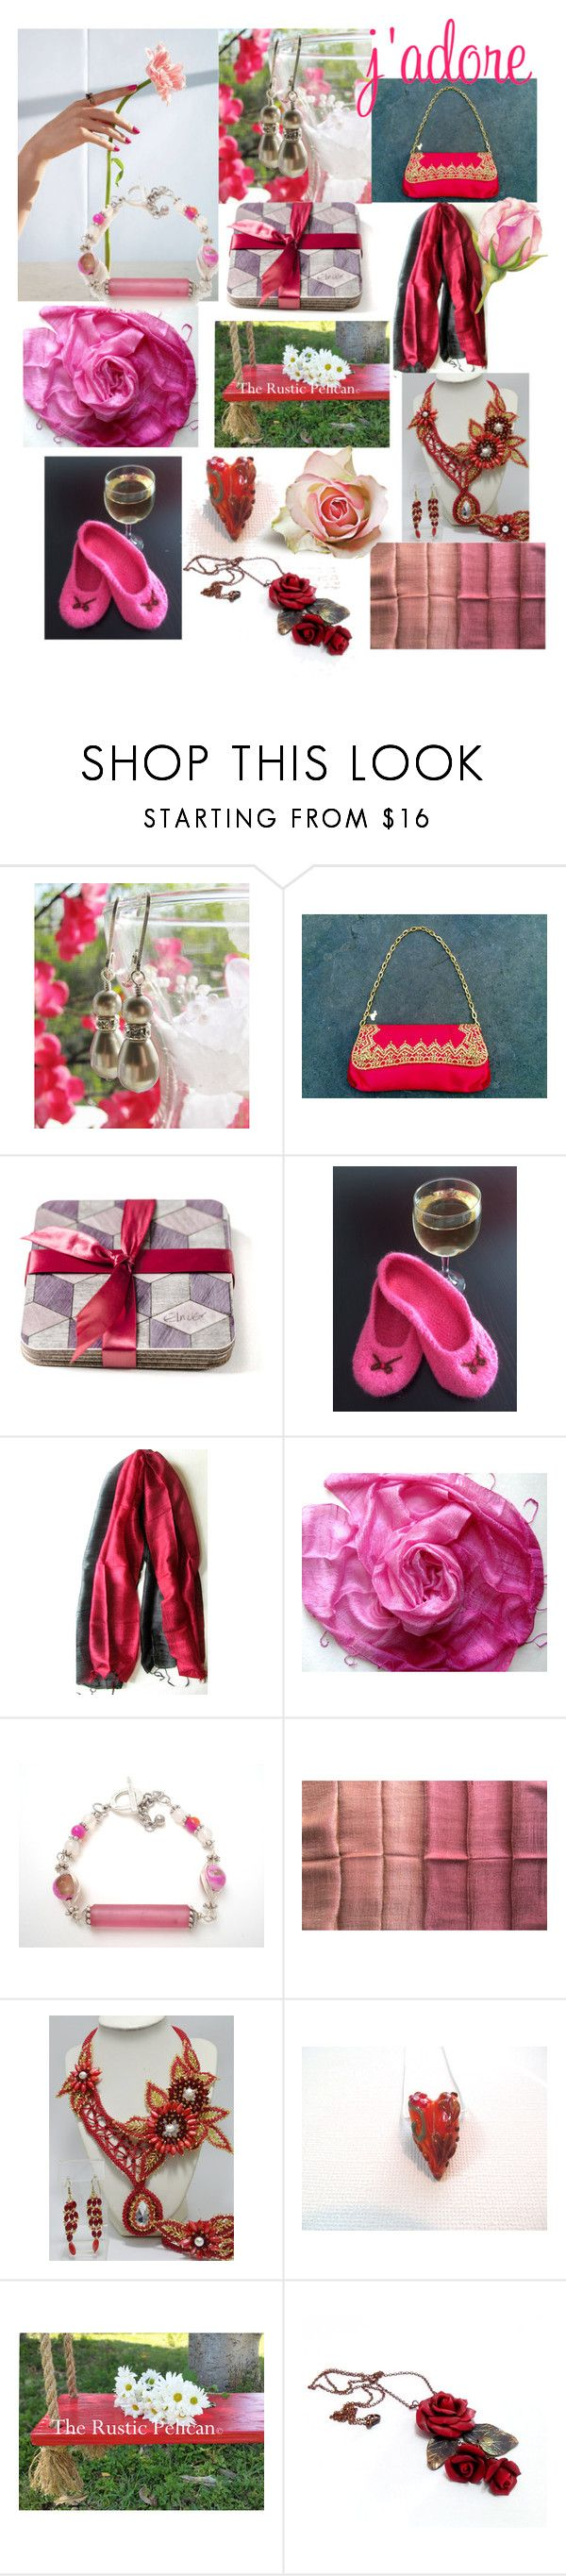 """""""J'Adore"""" by anna-recycle ❤ liked on Polyvore featuring Hostess, Scialle, modern, rustic and vintage"""